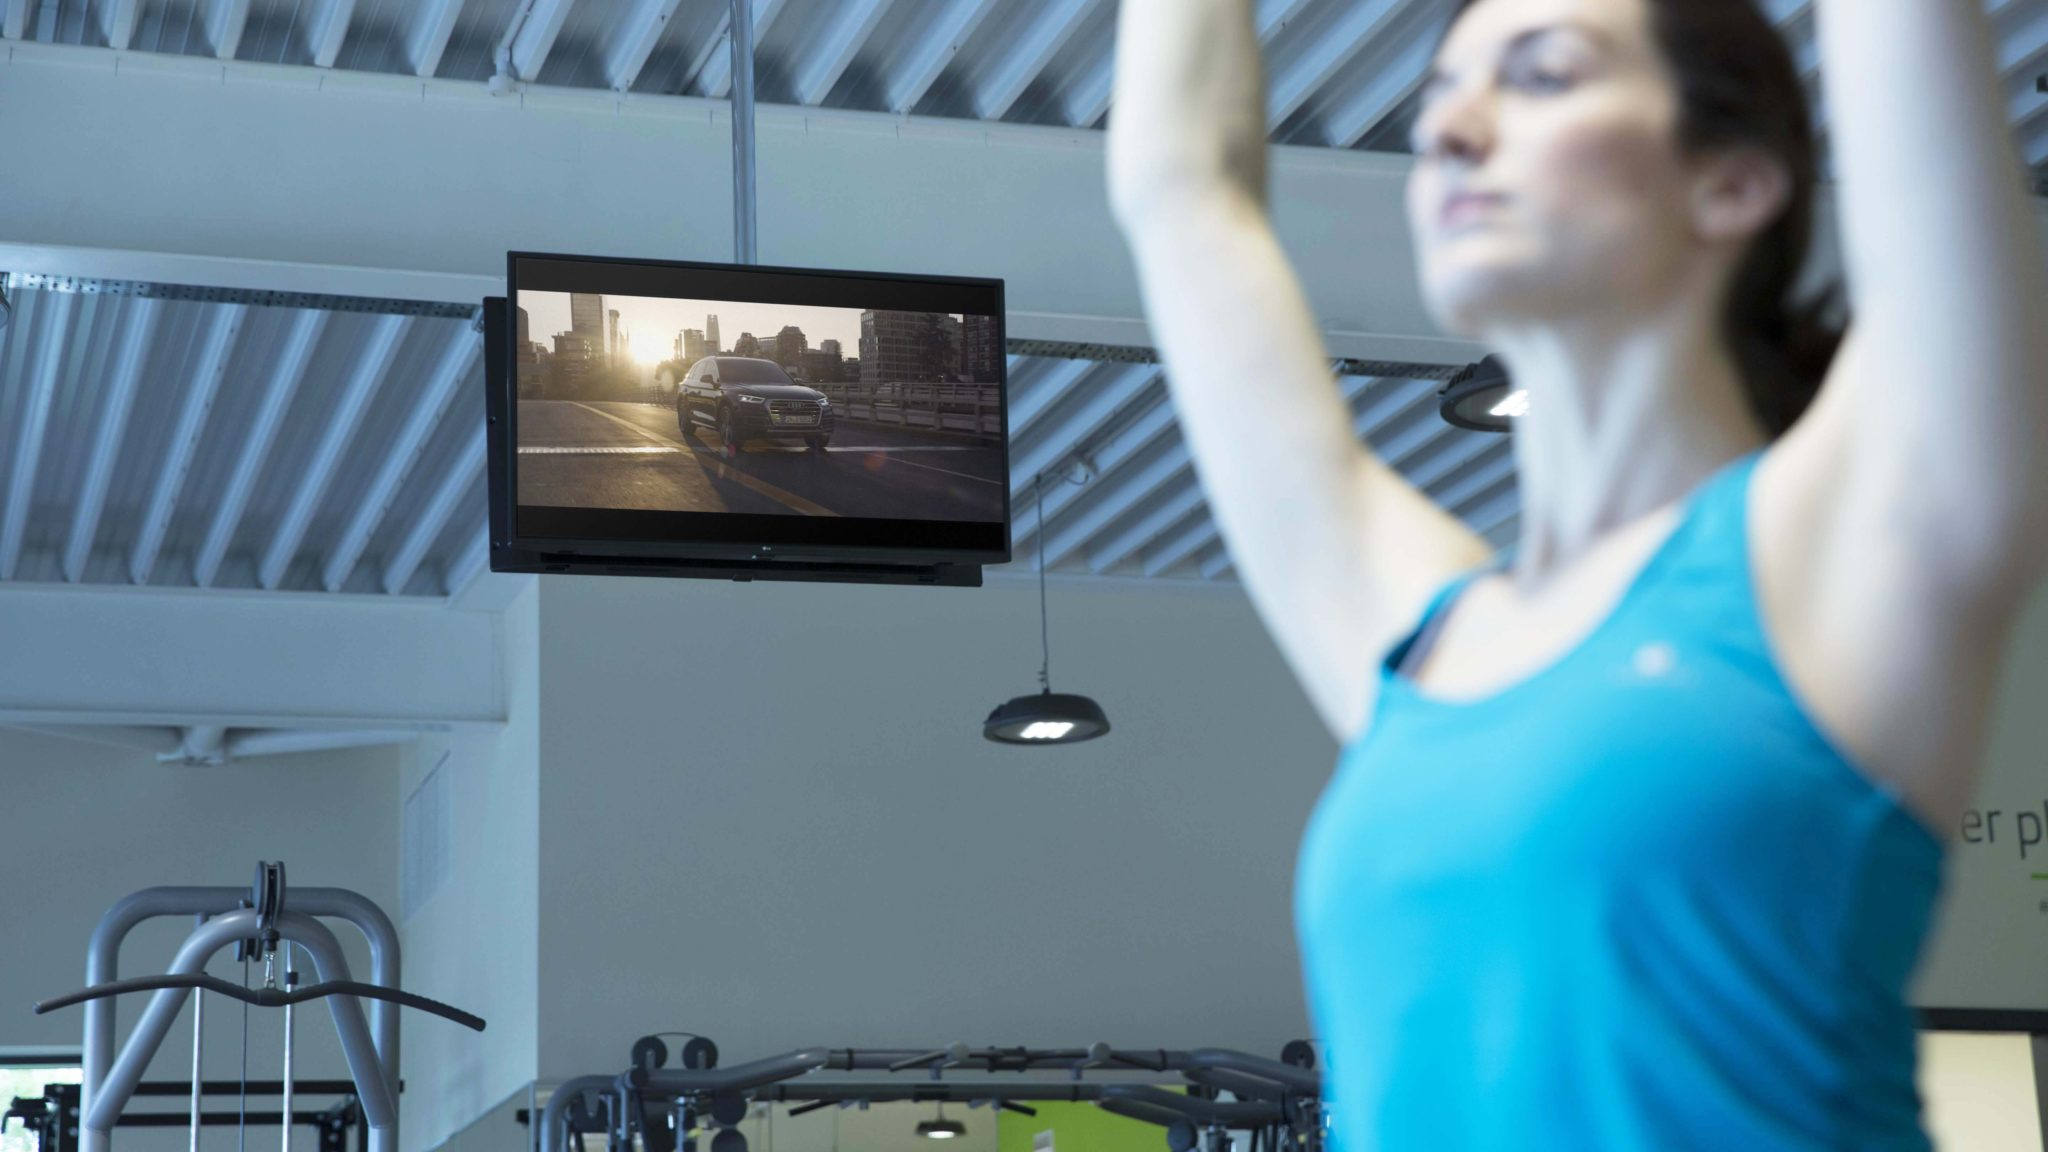 Woman in a blue tank top doing yoga in a gym while watching advertising on gym tv